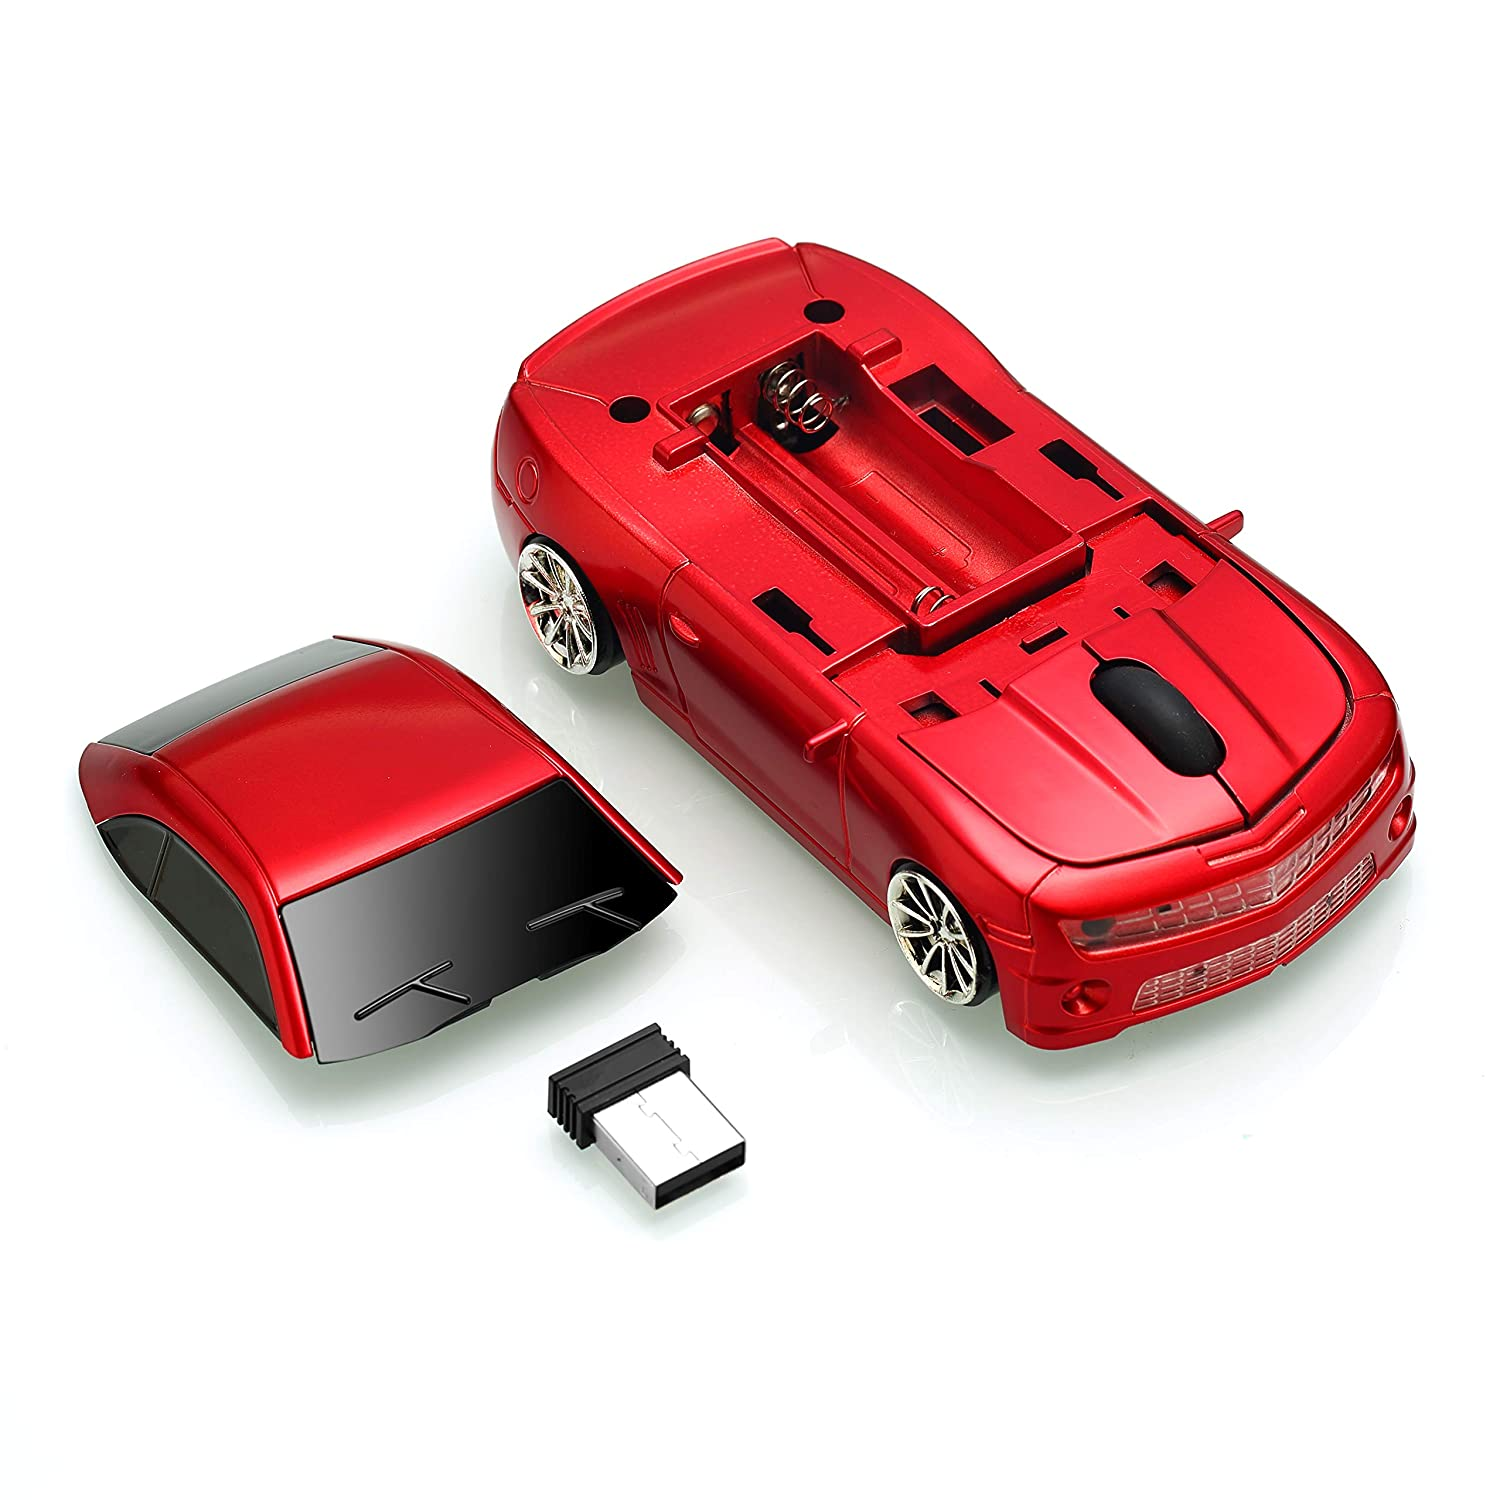 BKLNOG Wireless Car Mouse Updated with LED Headlights, 1600 DPI Sports Car Shaped Mouse for Mac, Computers, Red